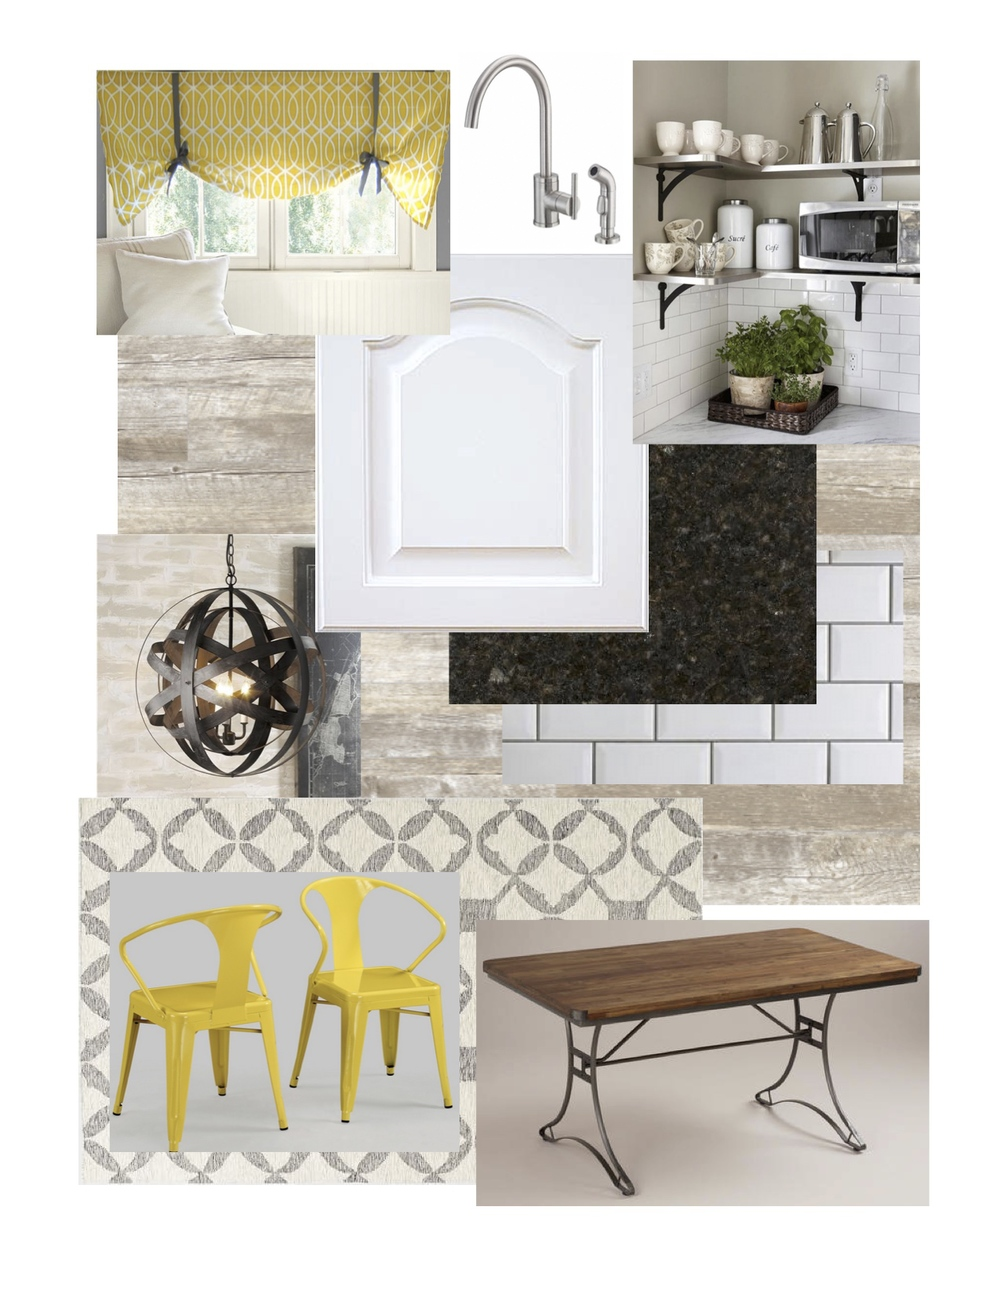 Rustic Modern Kitchen Mood board with Yellow